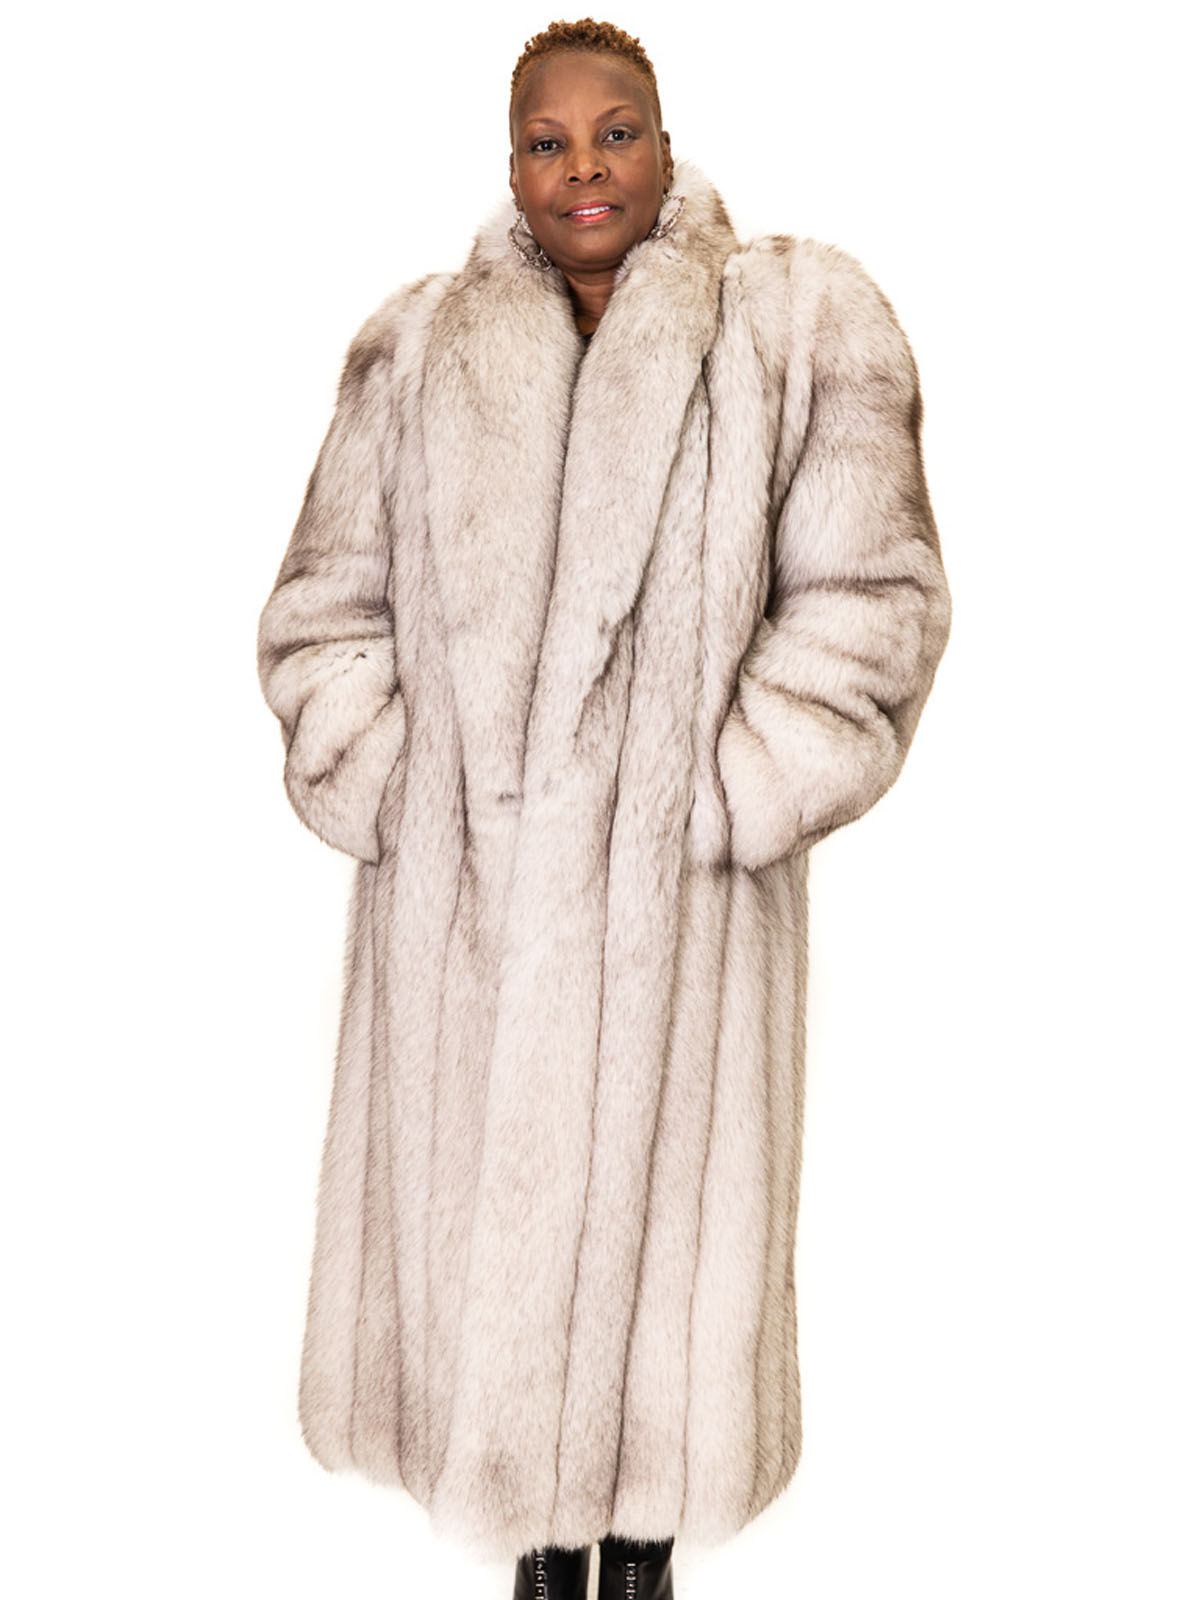 wholesale really cheap professional NEW Natural Norwegian Blue Fox Thick Pelt Coat | Milwaukee, WI | Ugent Furs